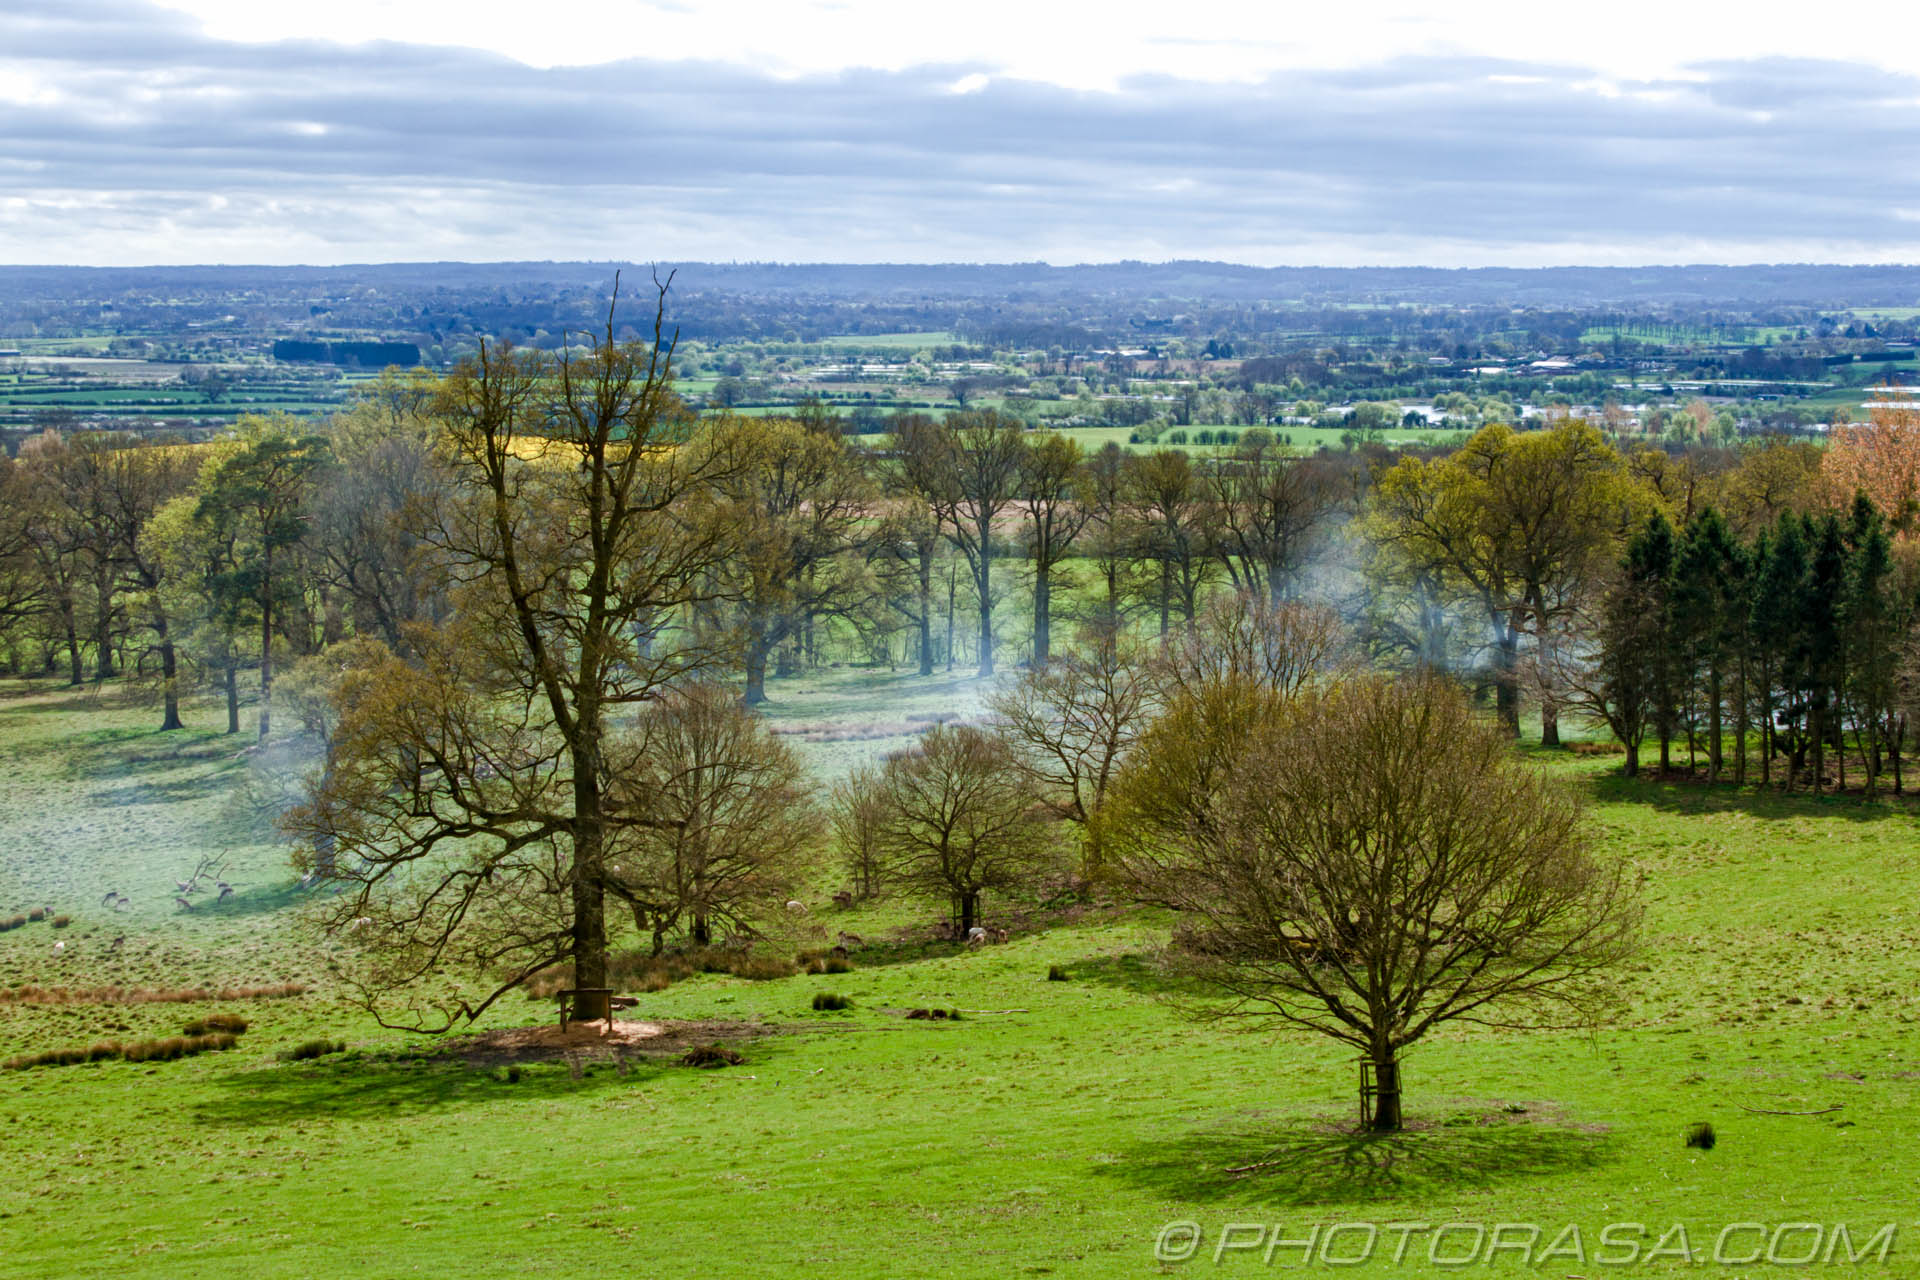 https://photorasa.com/view-boughton-monchelsea-churchyard/two-trees-and-deer/